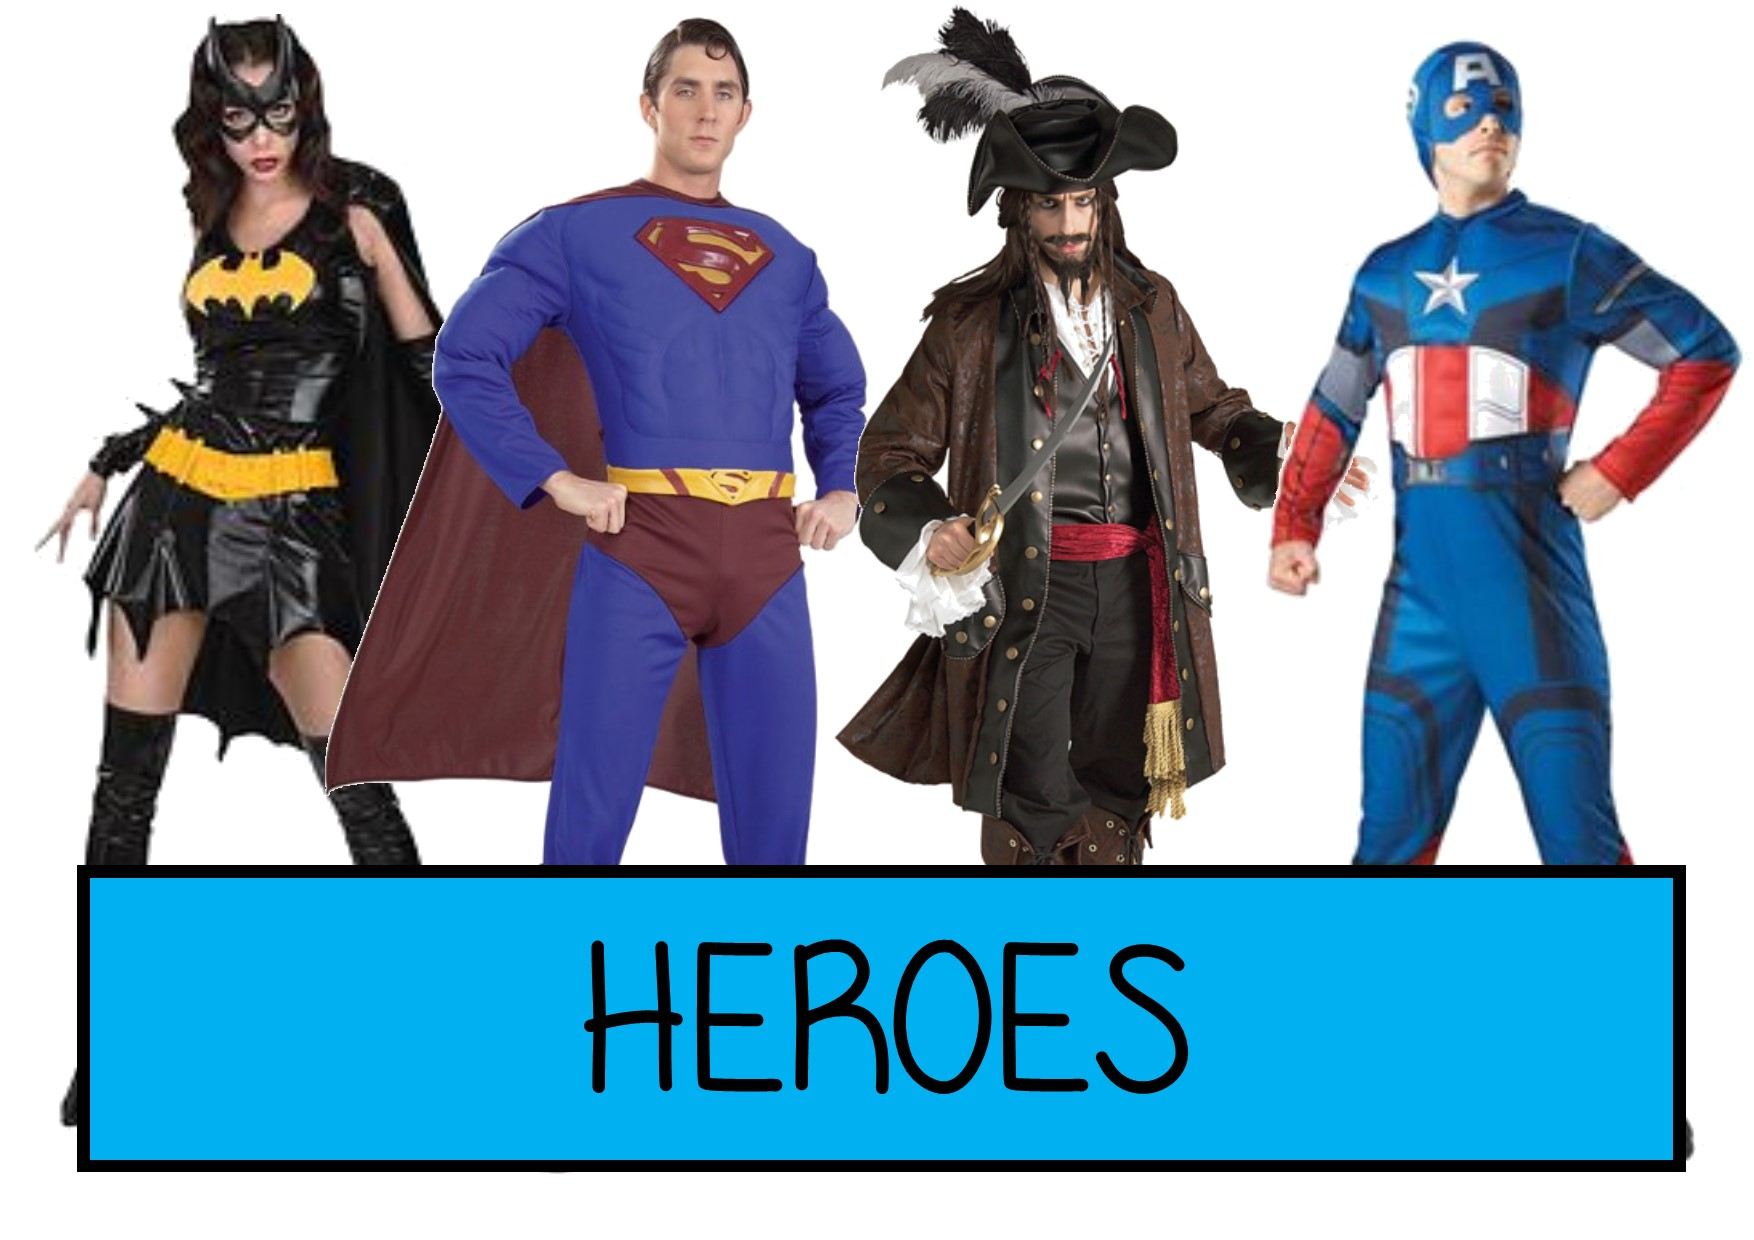 heroes fancy dress ideas